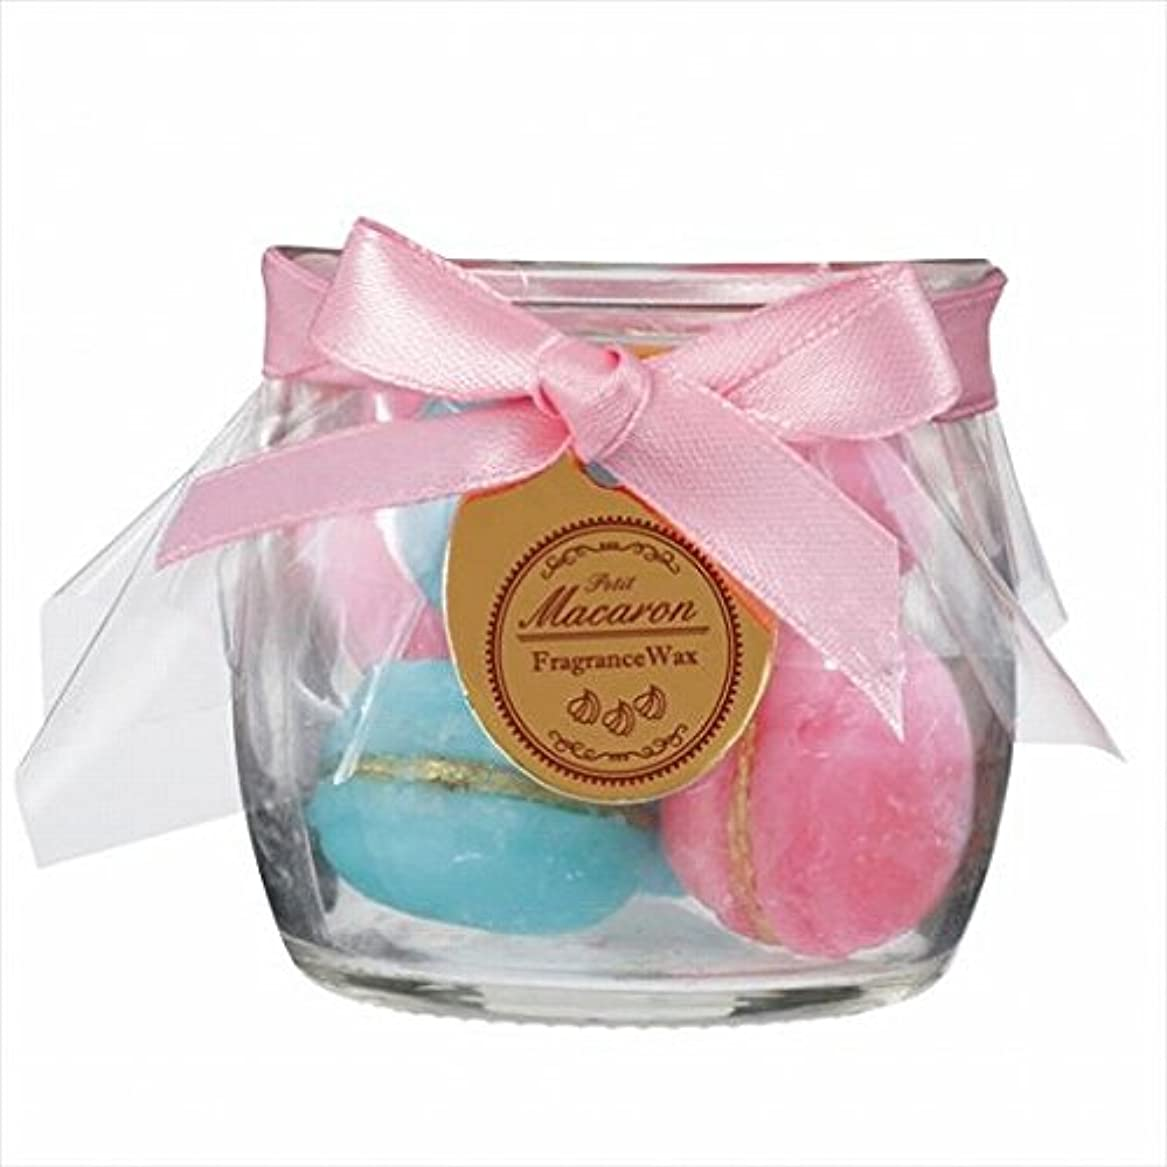 sweets candle プチマカロンフレグランス 「 ピーチ 」